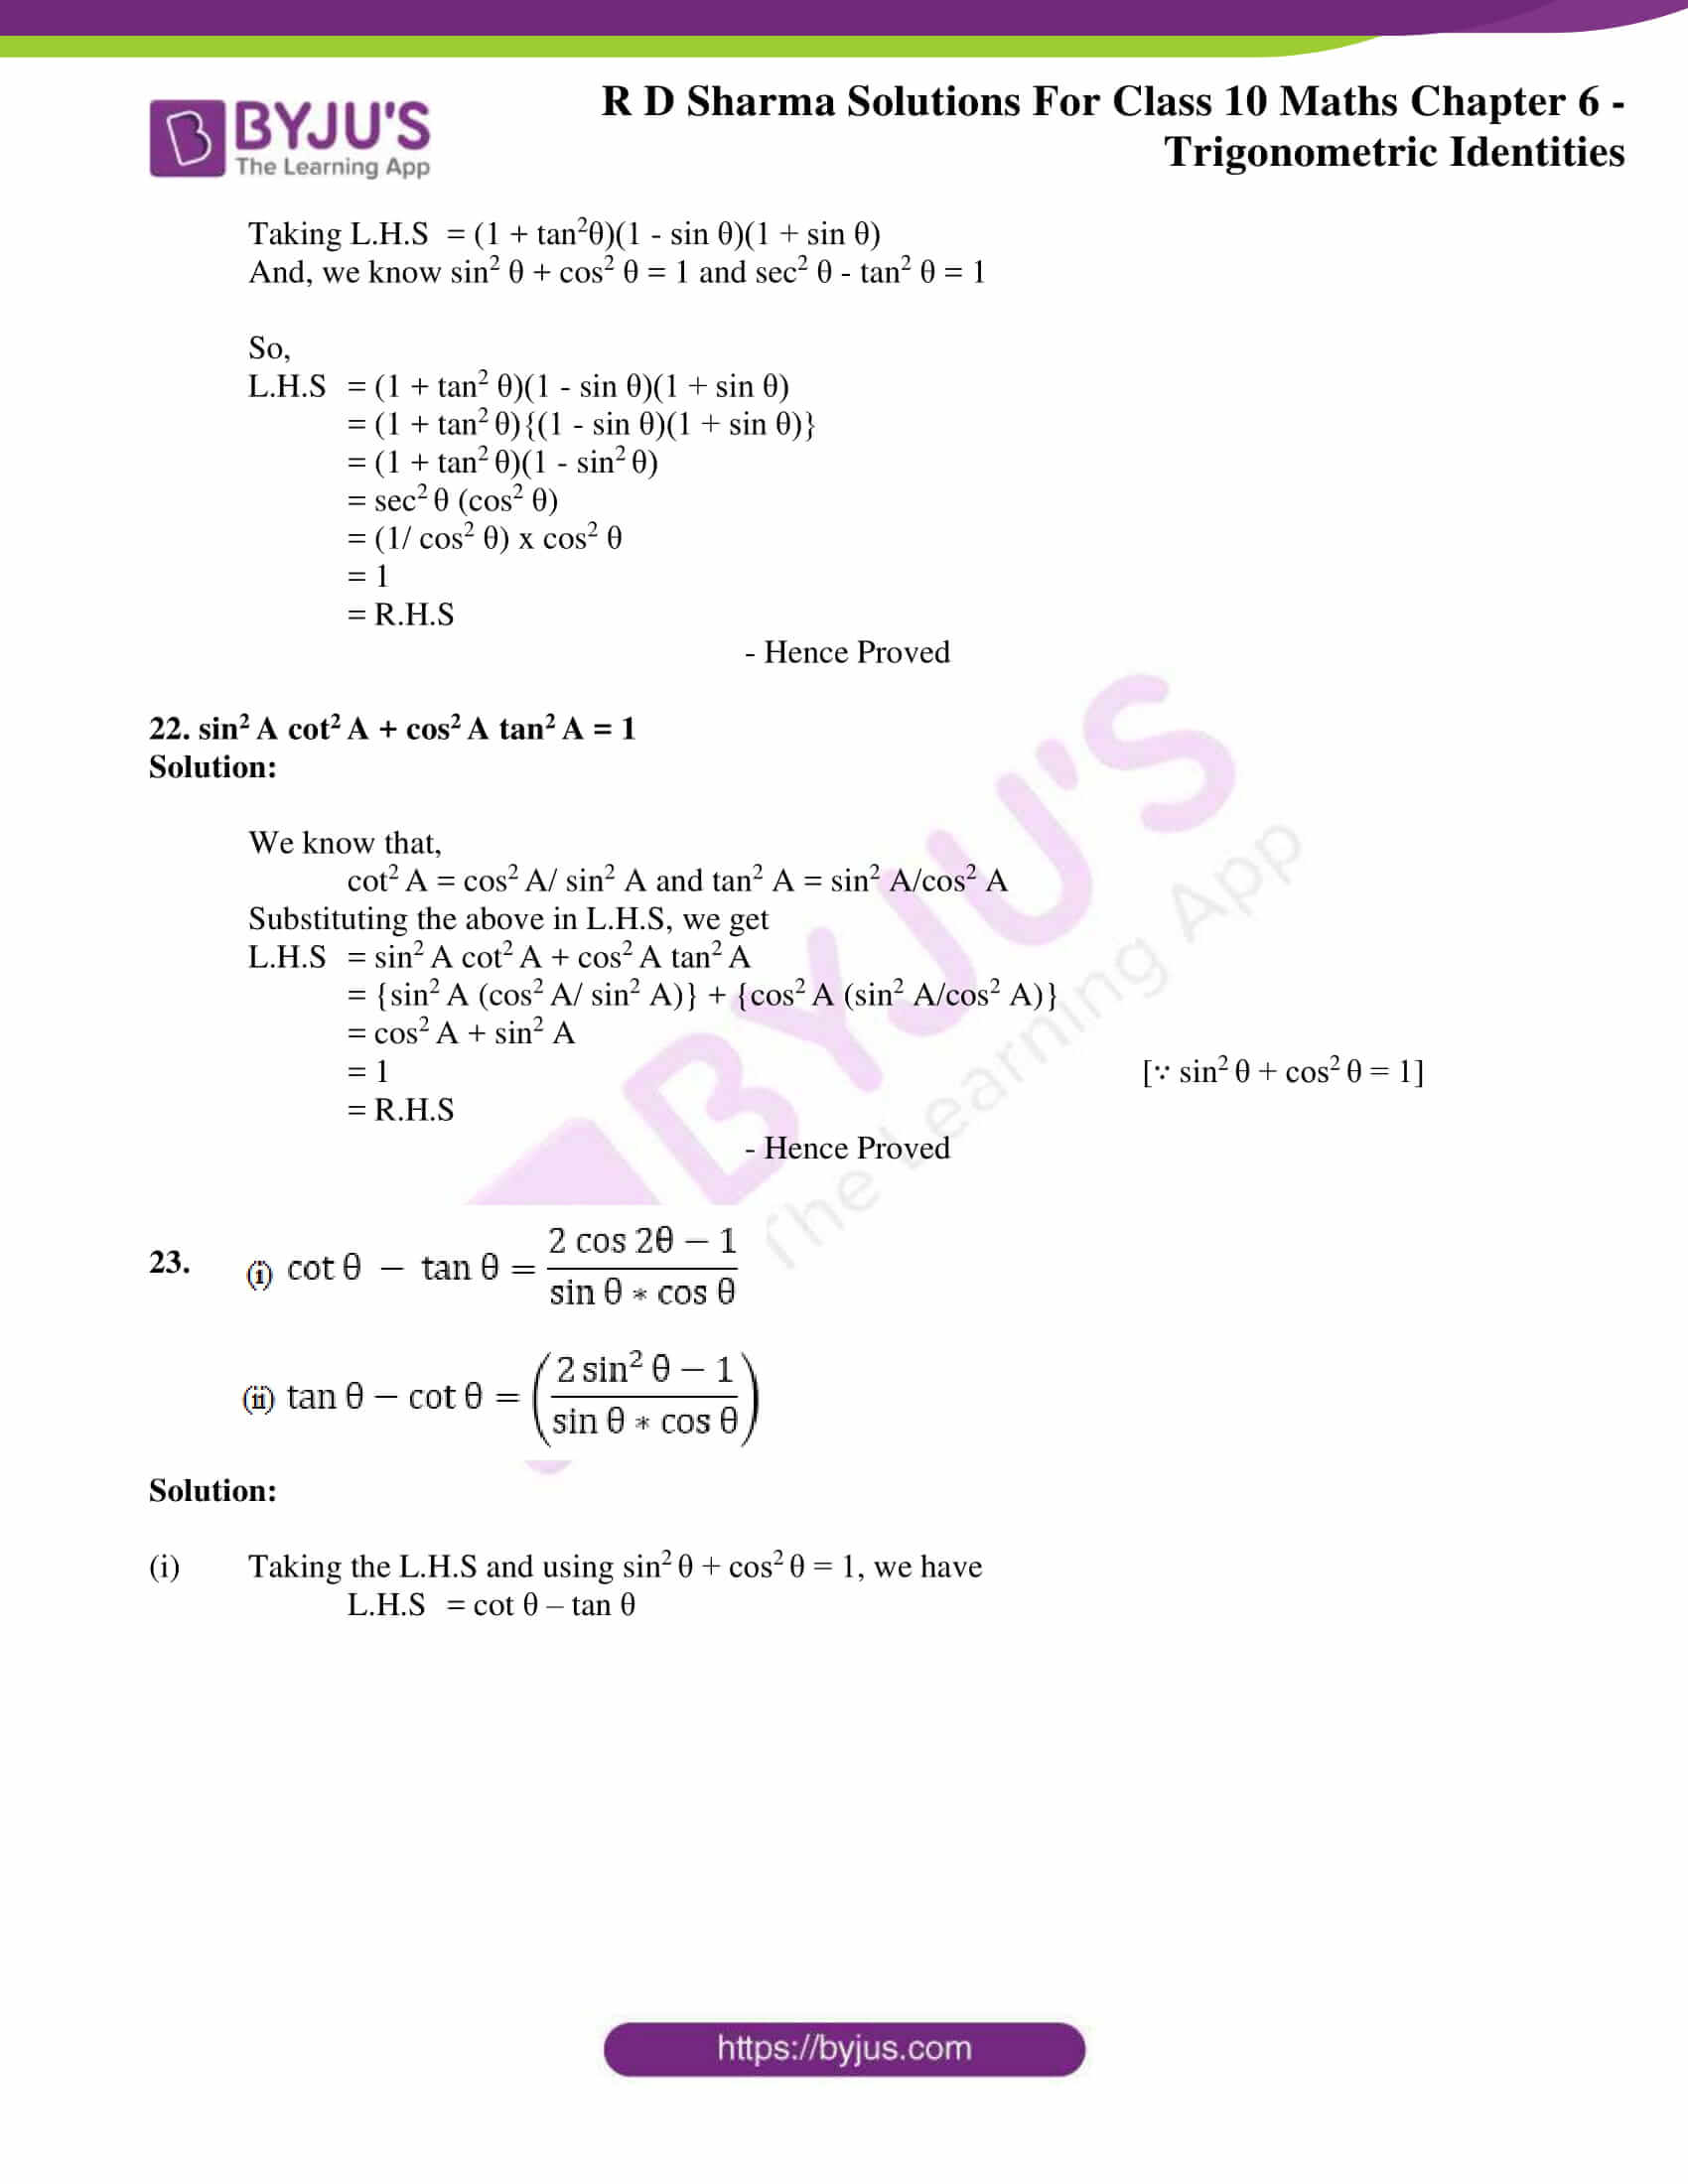 RD Sharma Solutions for Class 10 Chapter 6 Trigonometric Identities 11